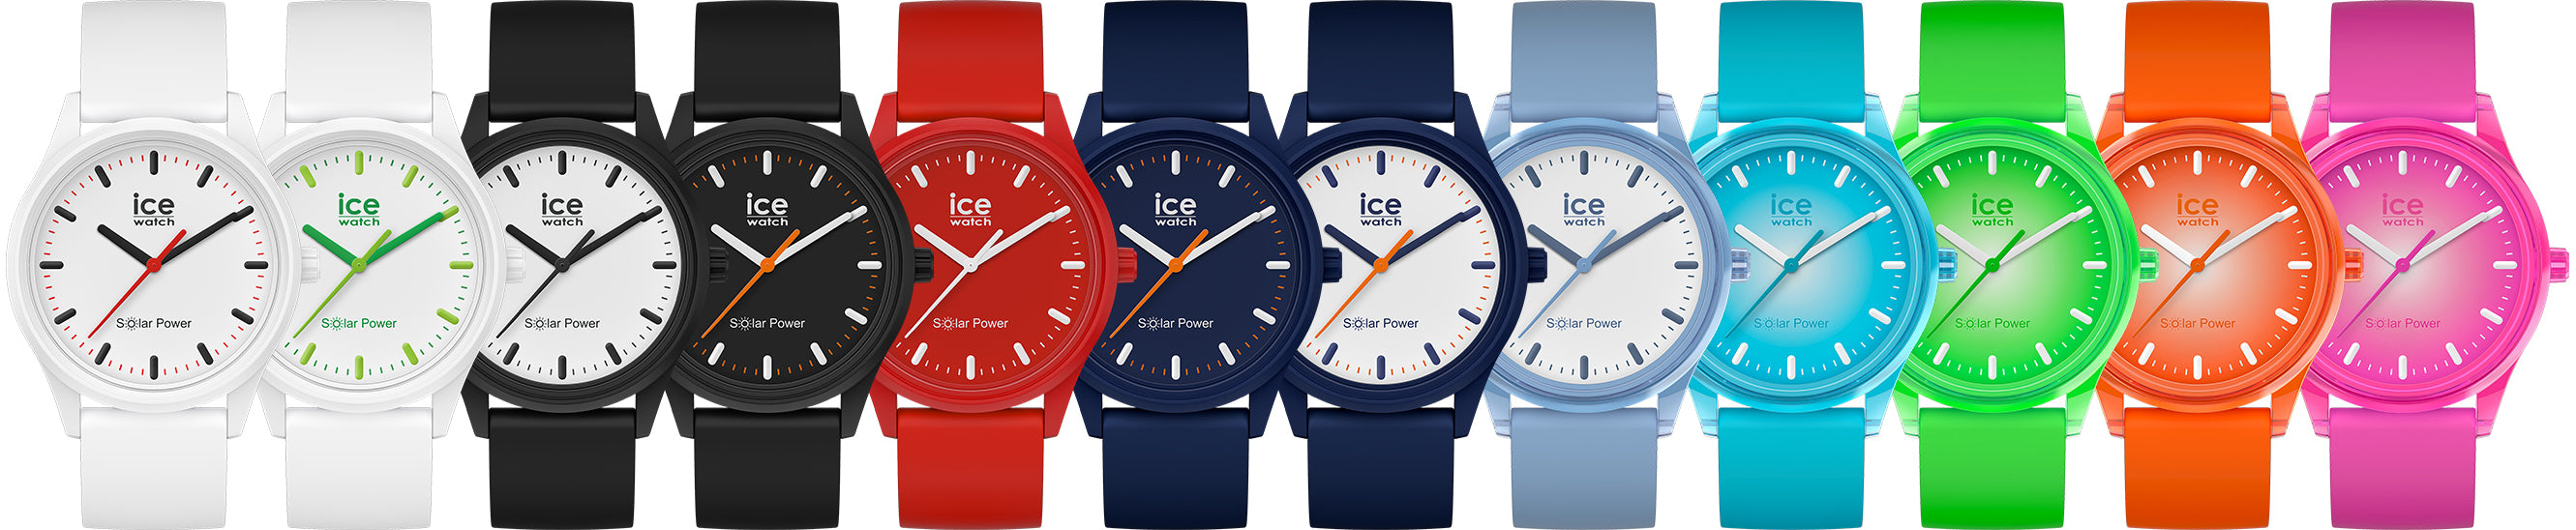 ice-watch-ice-solar-power-collection